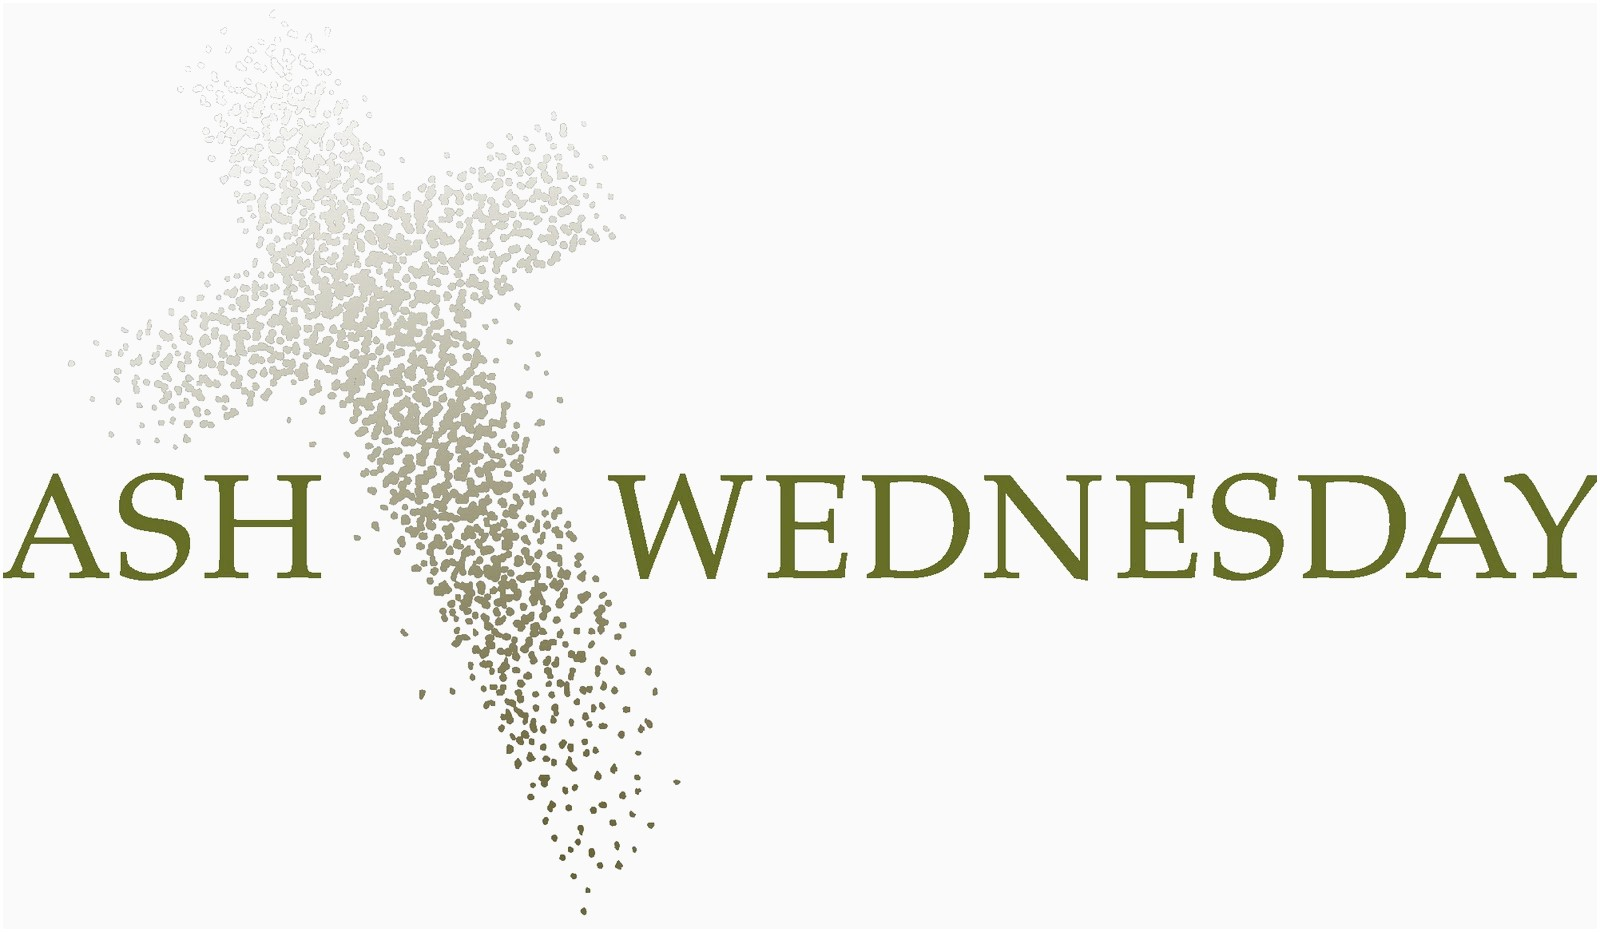 Ash Wednesday Clipart Free Luxury Funny Wednesday Clipart Clipart Suggest